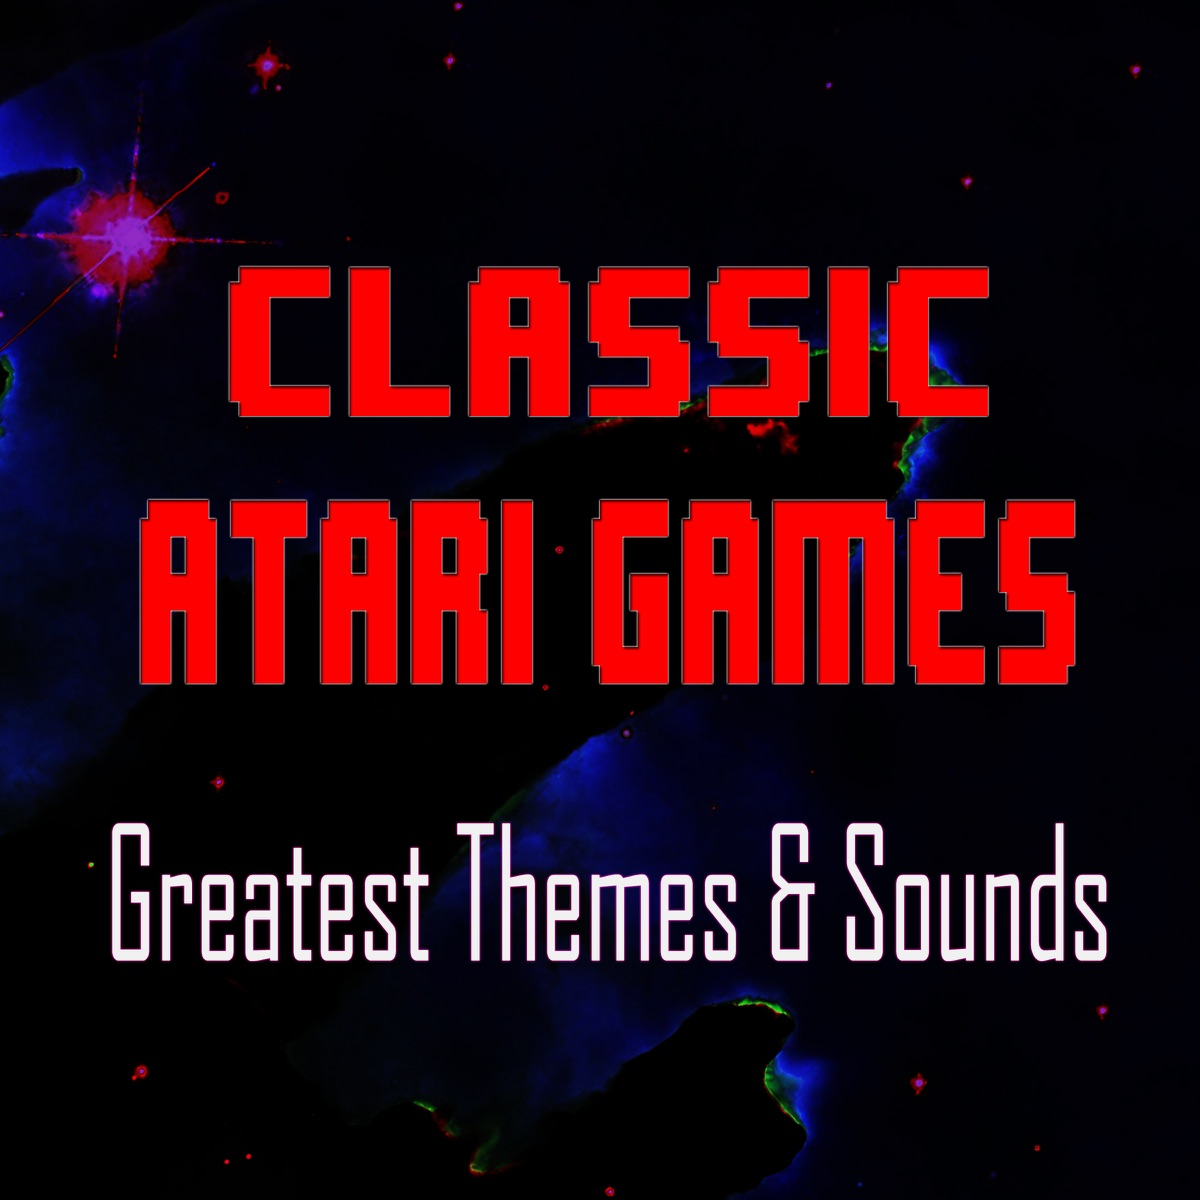 Classic Atari Games - Greatest Themes  Sounds 8-Bit Arcade CD cover